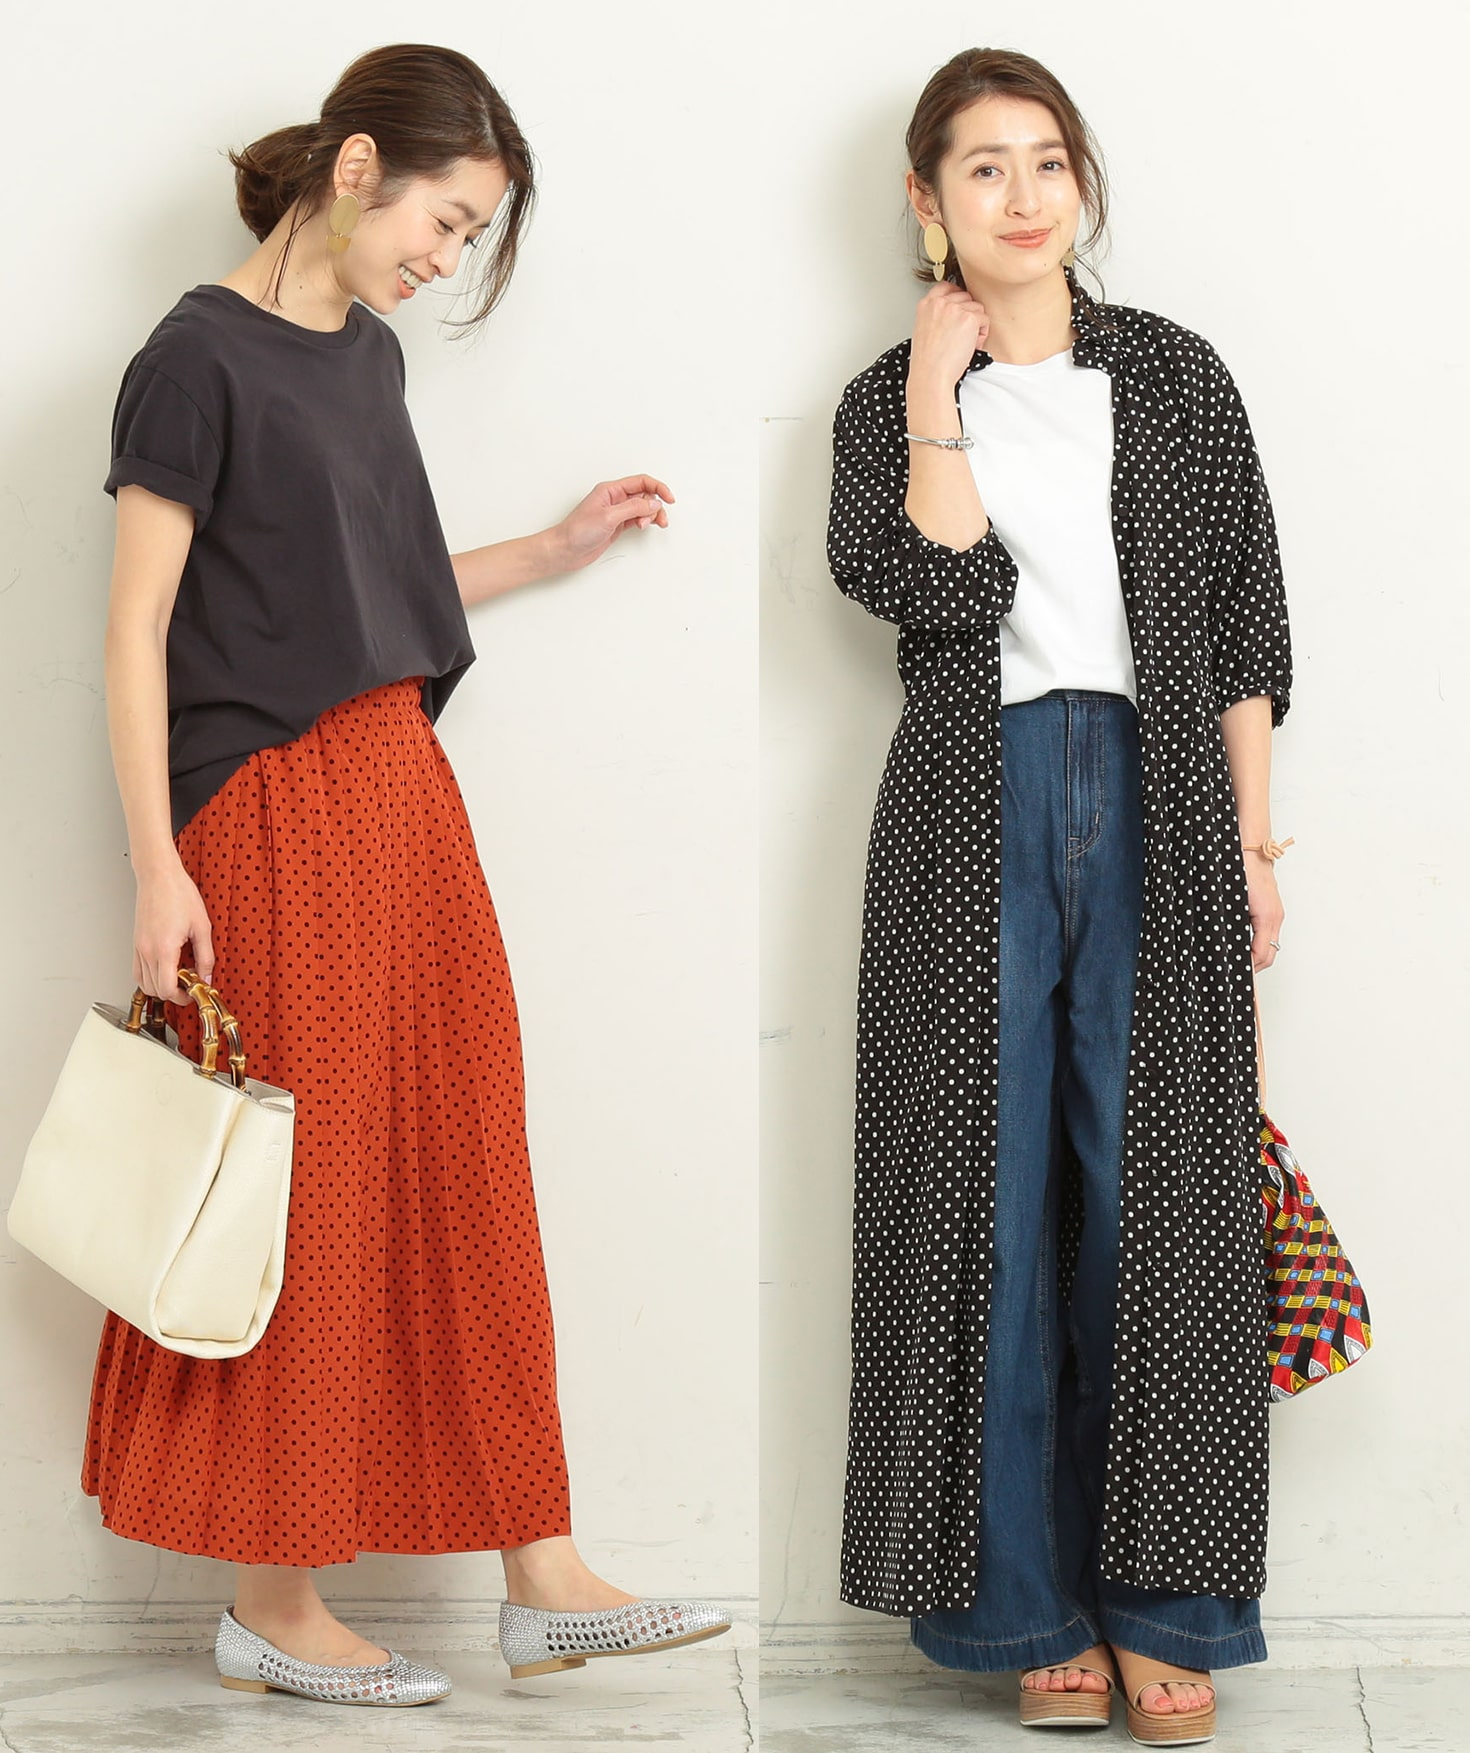 【BEAUTY&YOUTH】Daily Styling Items